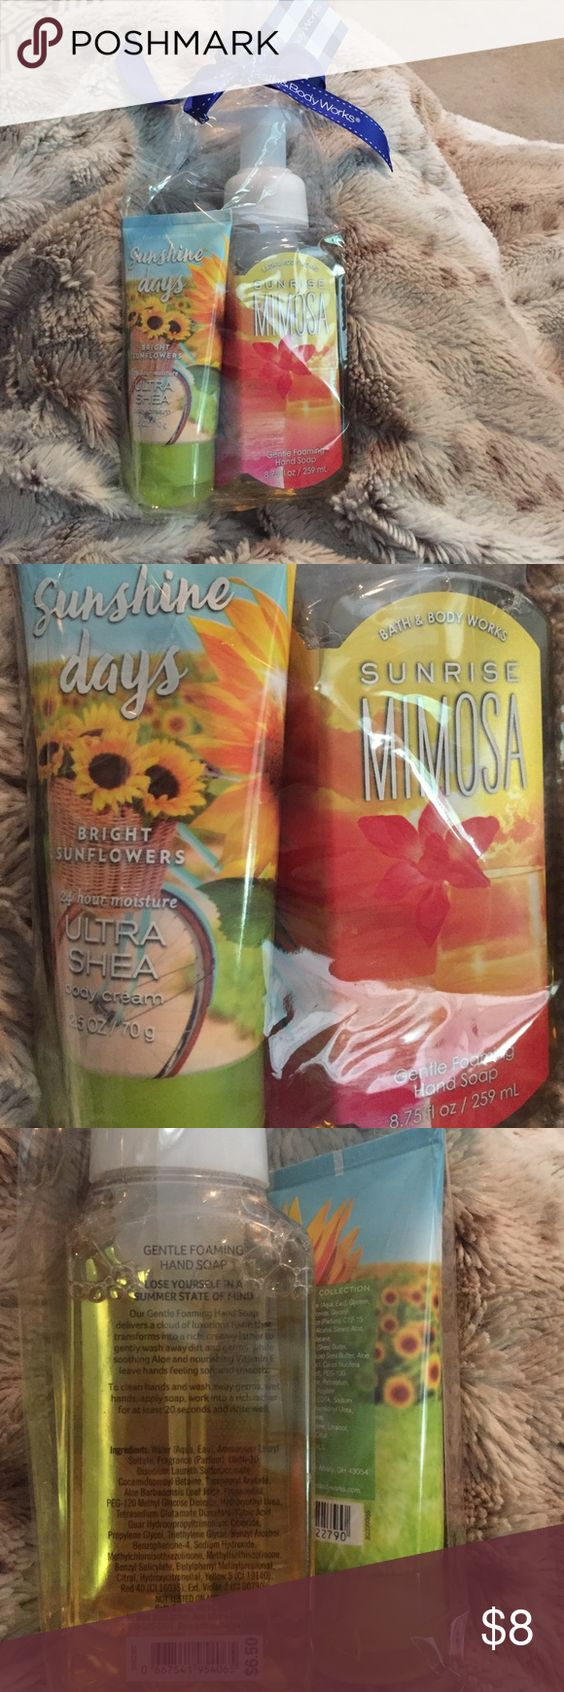 🎉🌻🆕Bath & Body Works Gift Set🌻 Includes 1 mimosa sunrise gentle foaming hand soap & 1 sunshine days bright flowers ultra she's body Cream. Free make up bag with bundles! ☺️ 🎉 Bath & Body Works Other